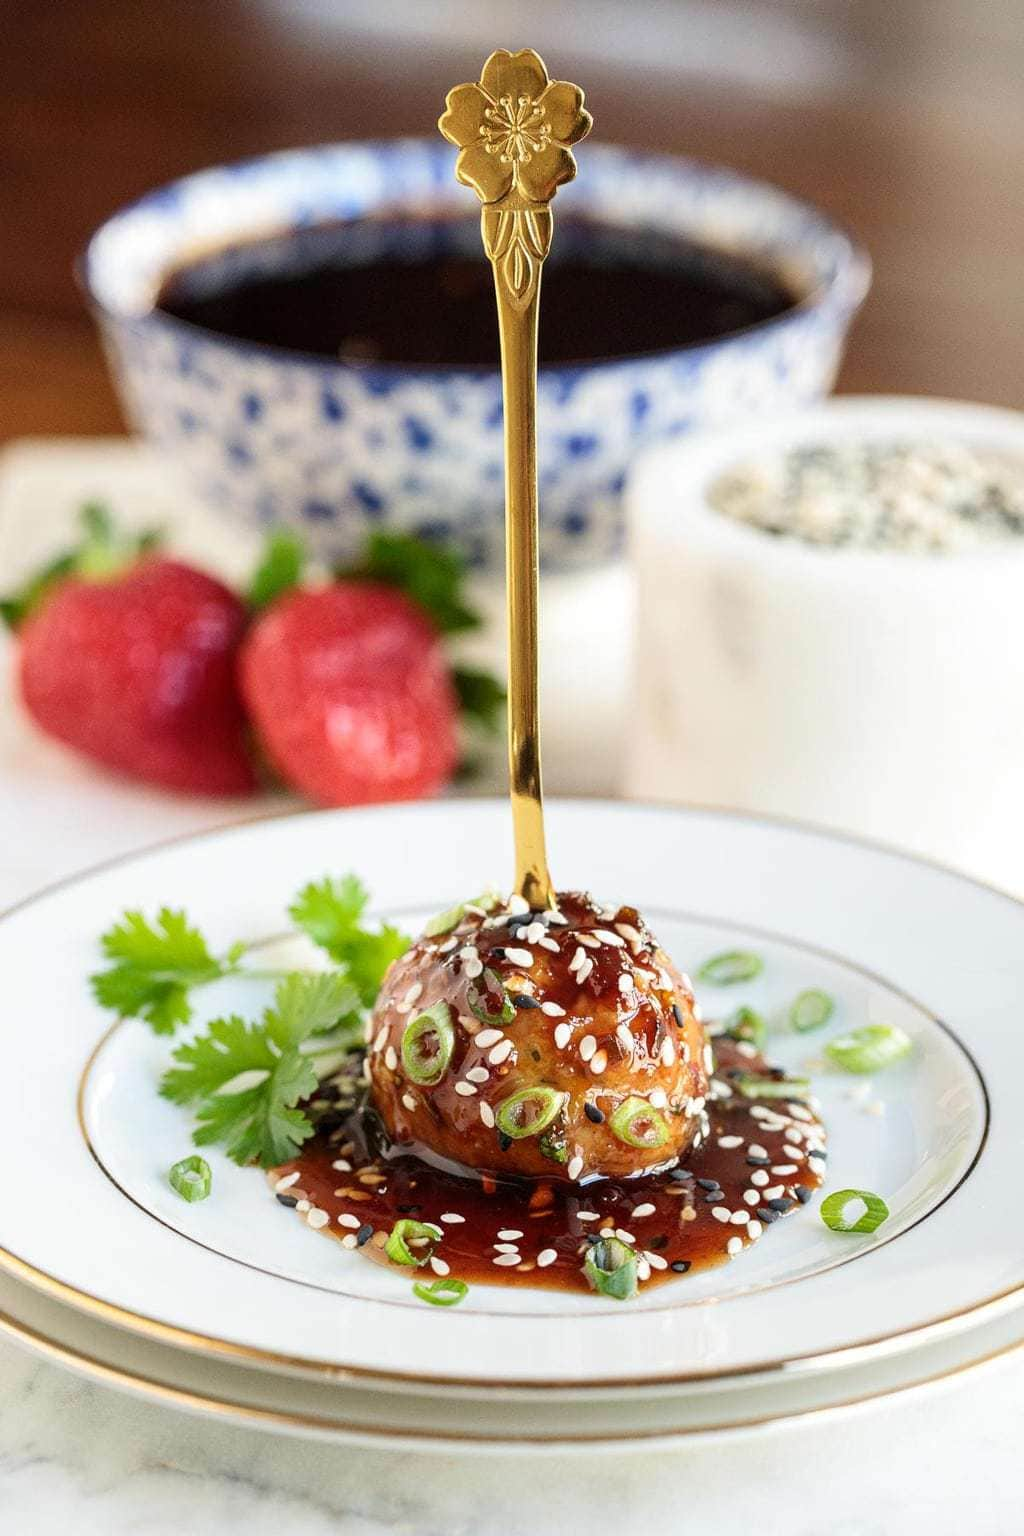 Closeup photo of a white and gold-rimmed appetizer plate with a Strawberry Balsamic Glazed Chicken Meatball in the center garnished with cilantro and green onions.